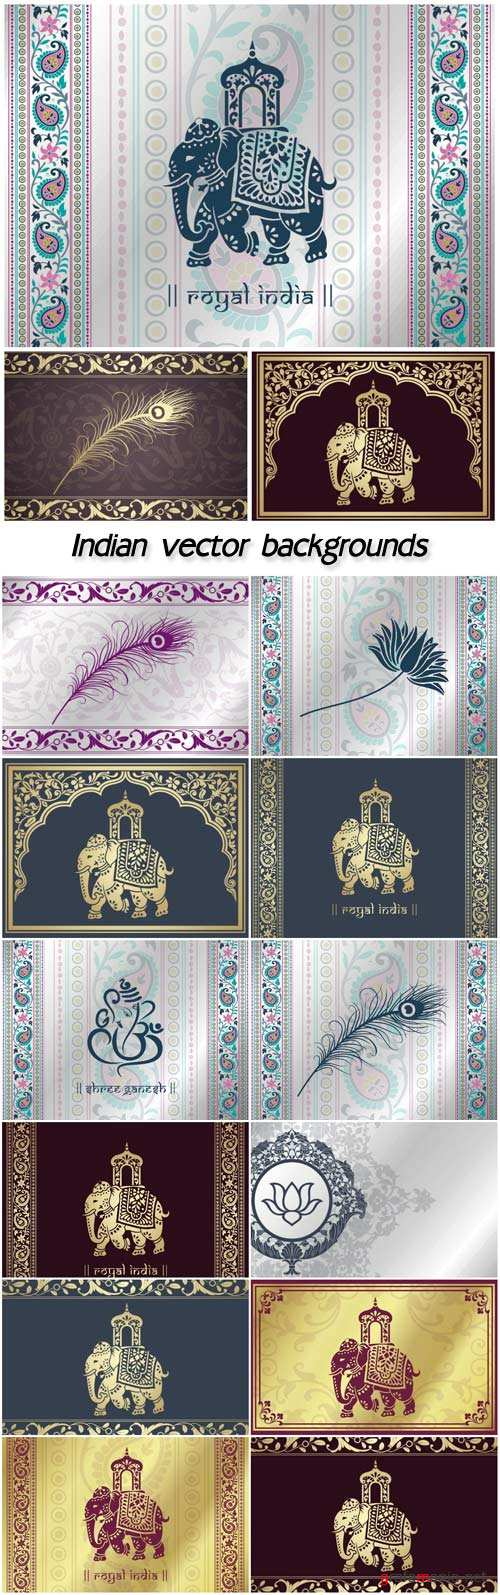 Indian vector backgrounds with patterns and elephants